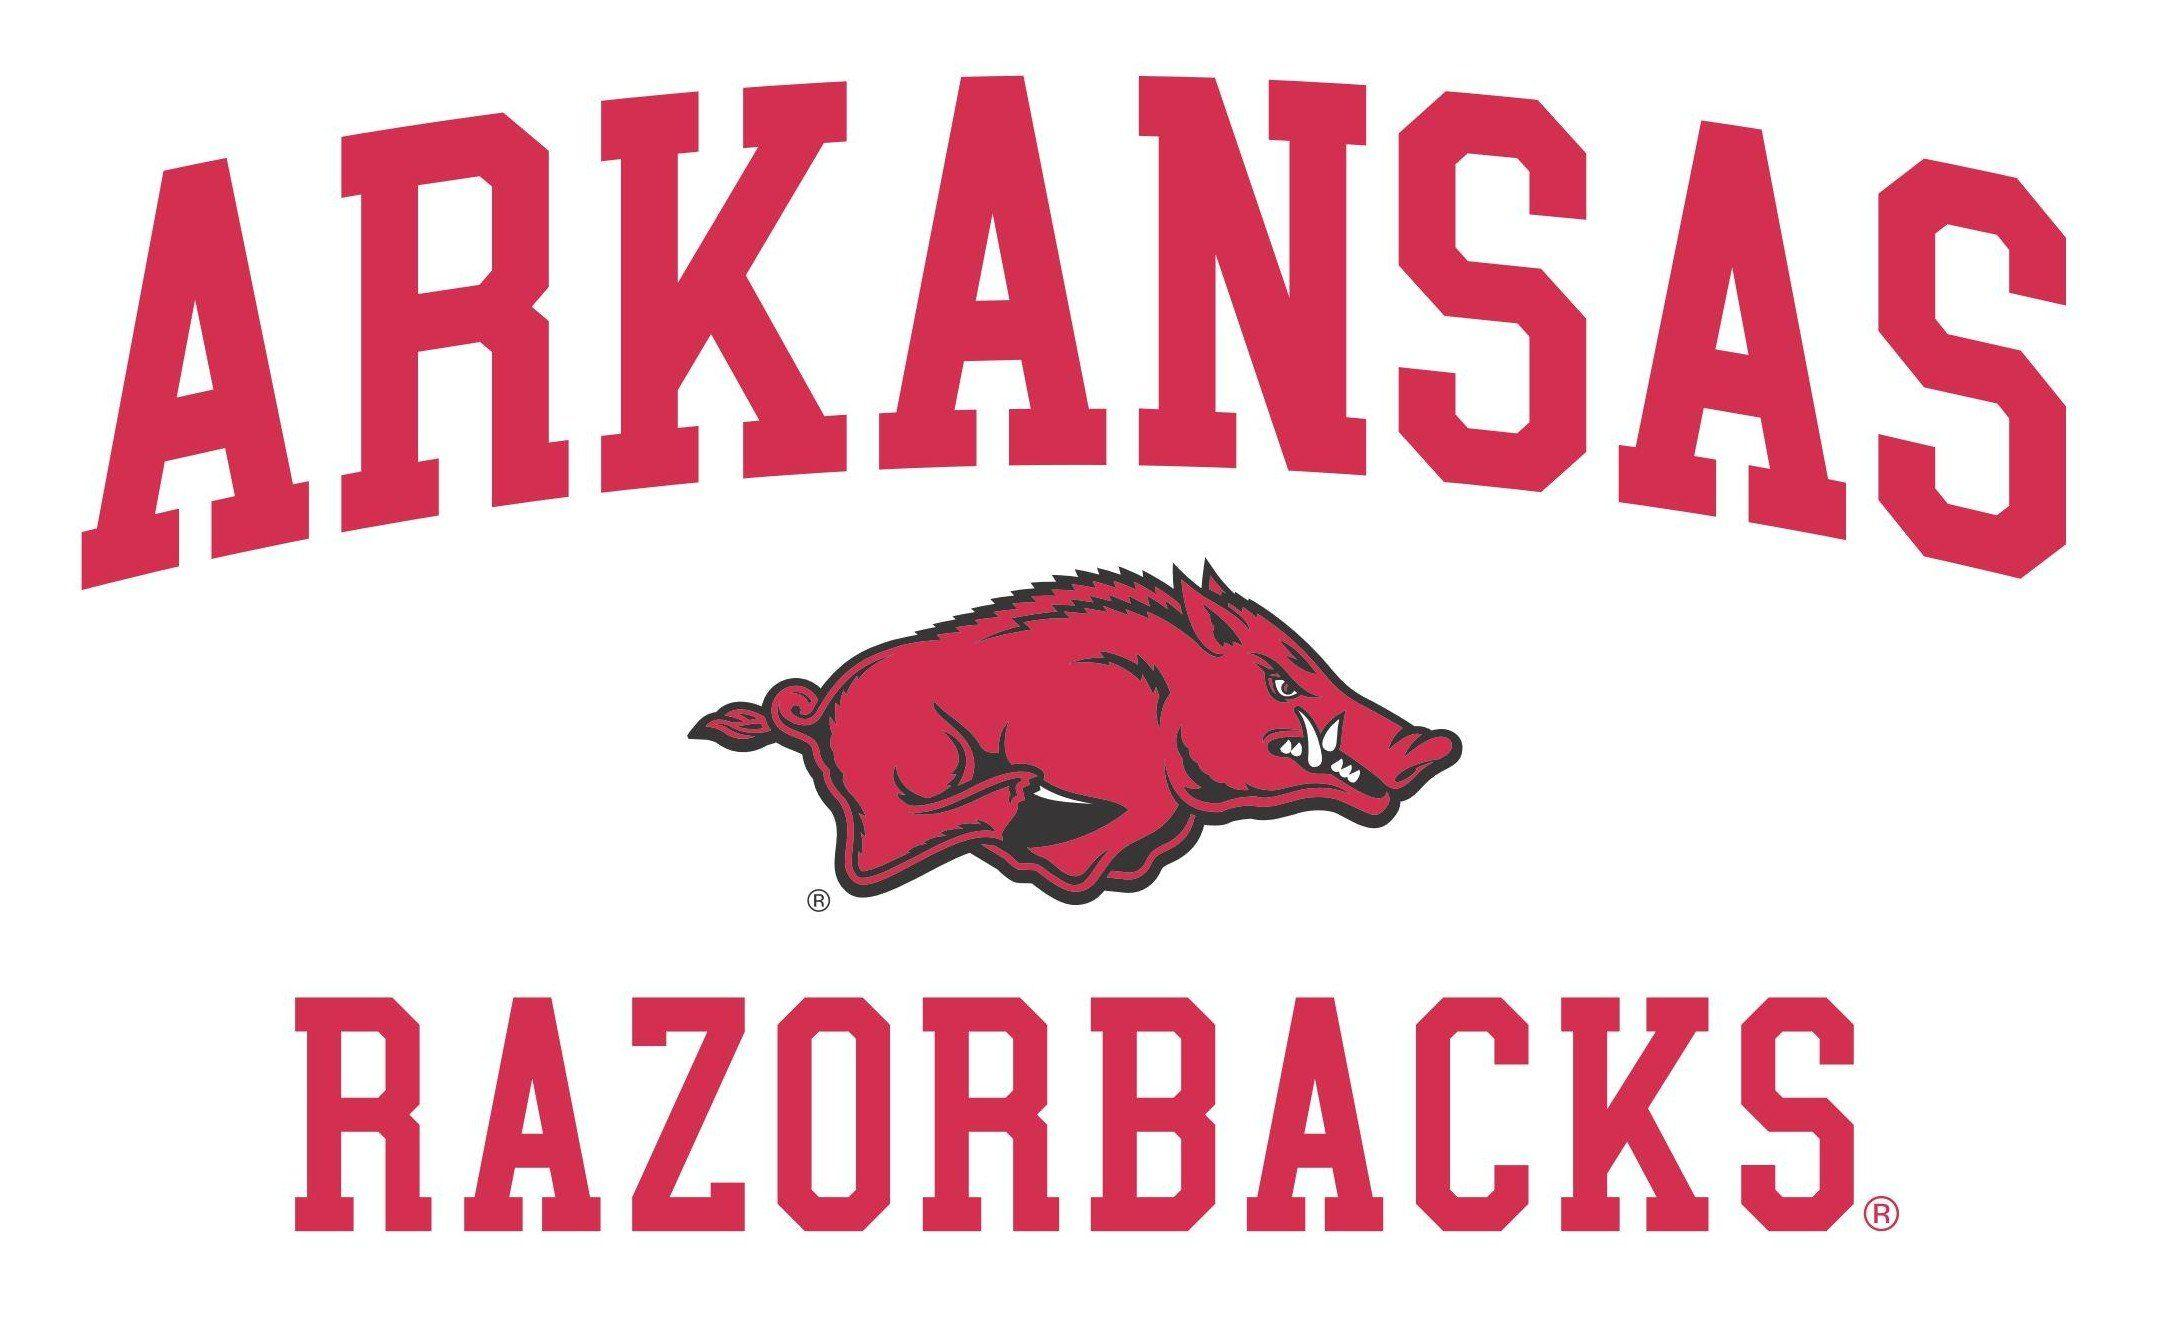 Arkansas Wallpapers HD